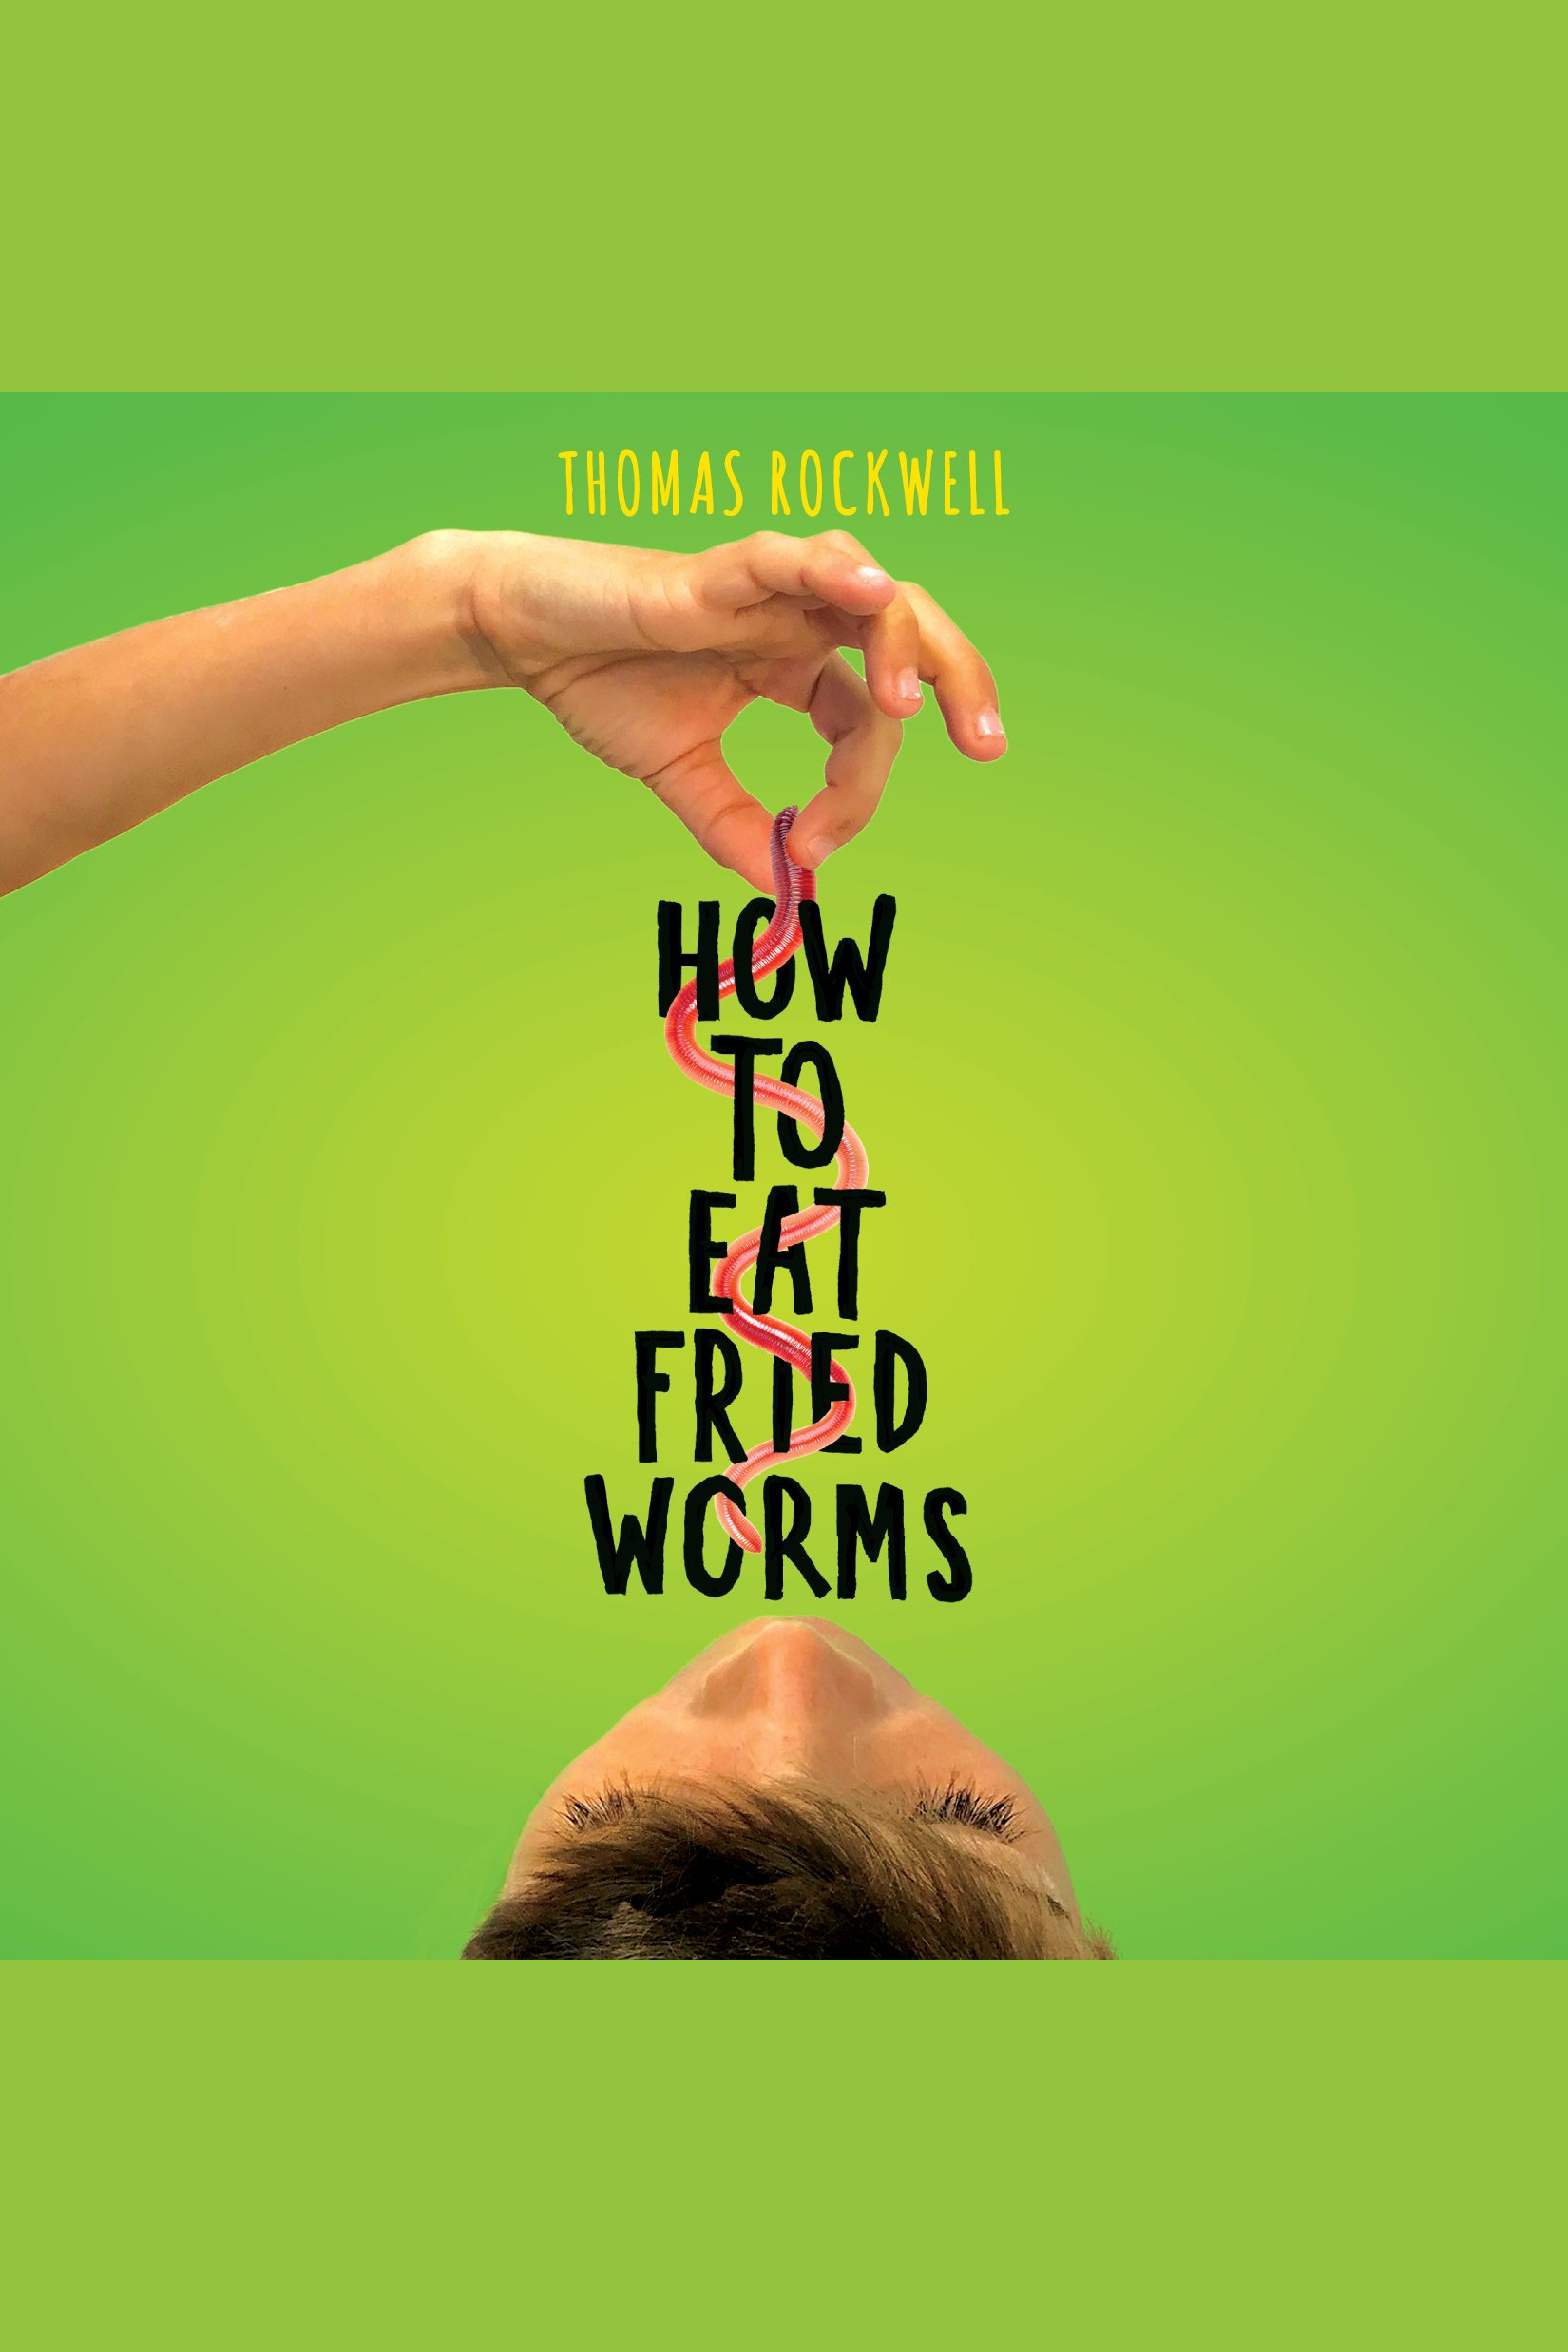 How to eat fried worms cover image